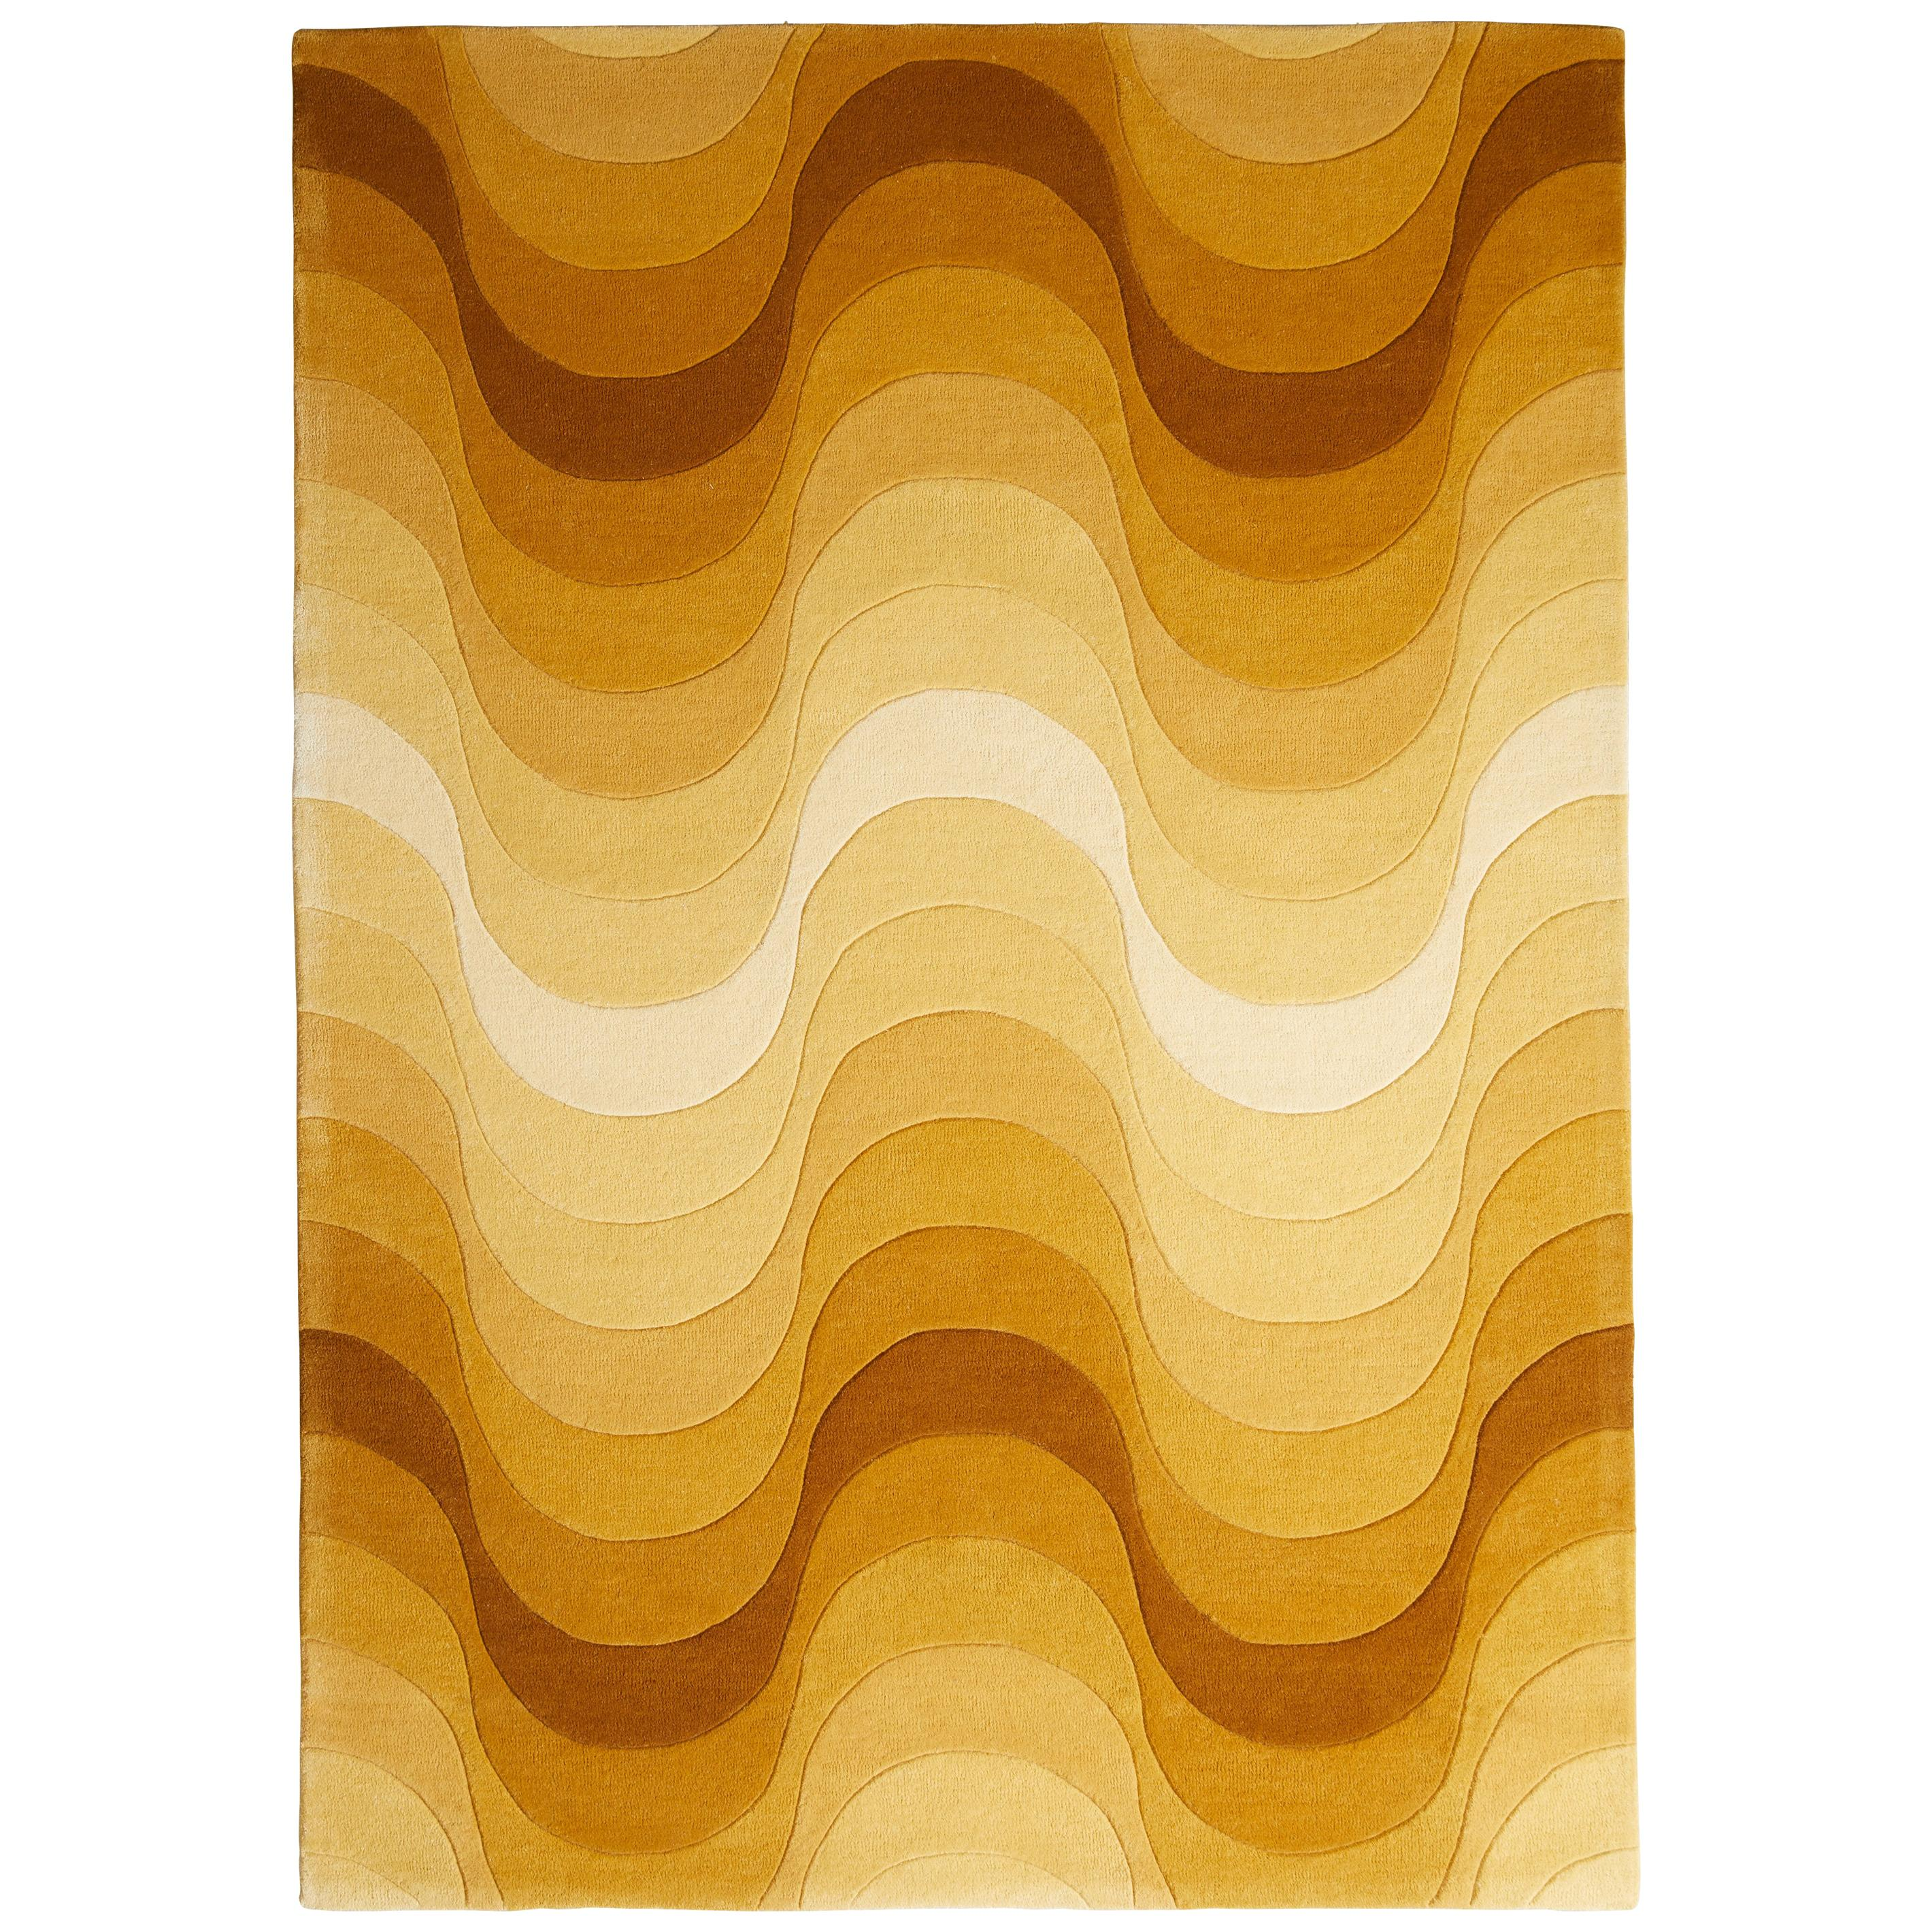 Wave Hand-Tufted Rug in Yellow by Verner Panton